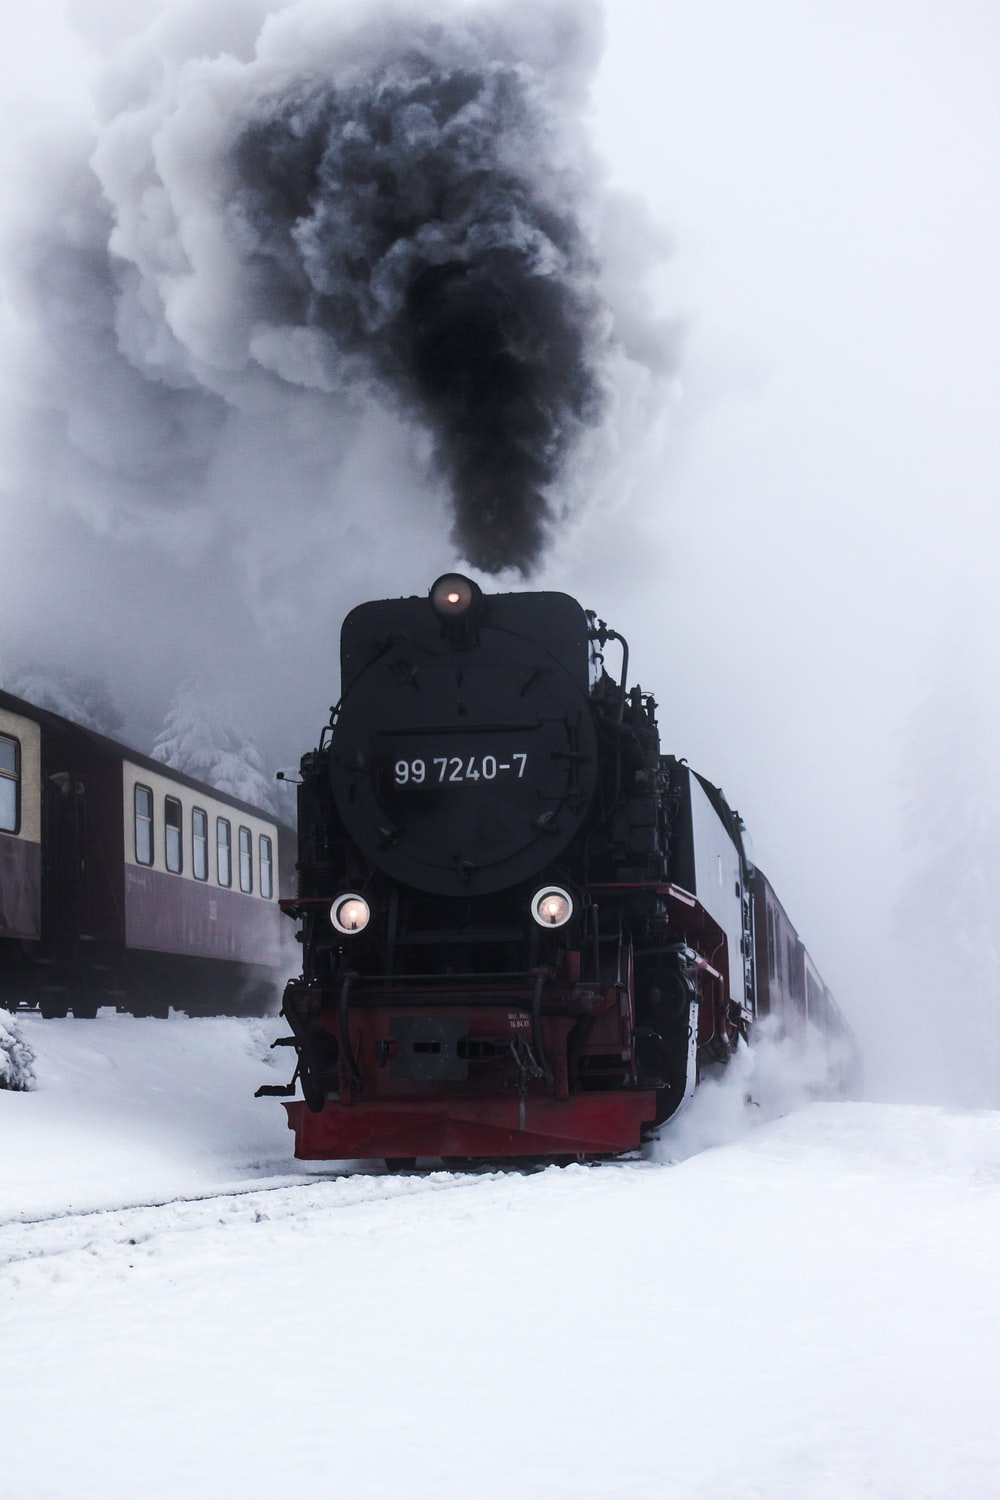 black and red train on snow covered ground during daytime